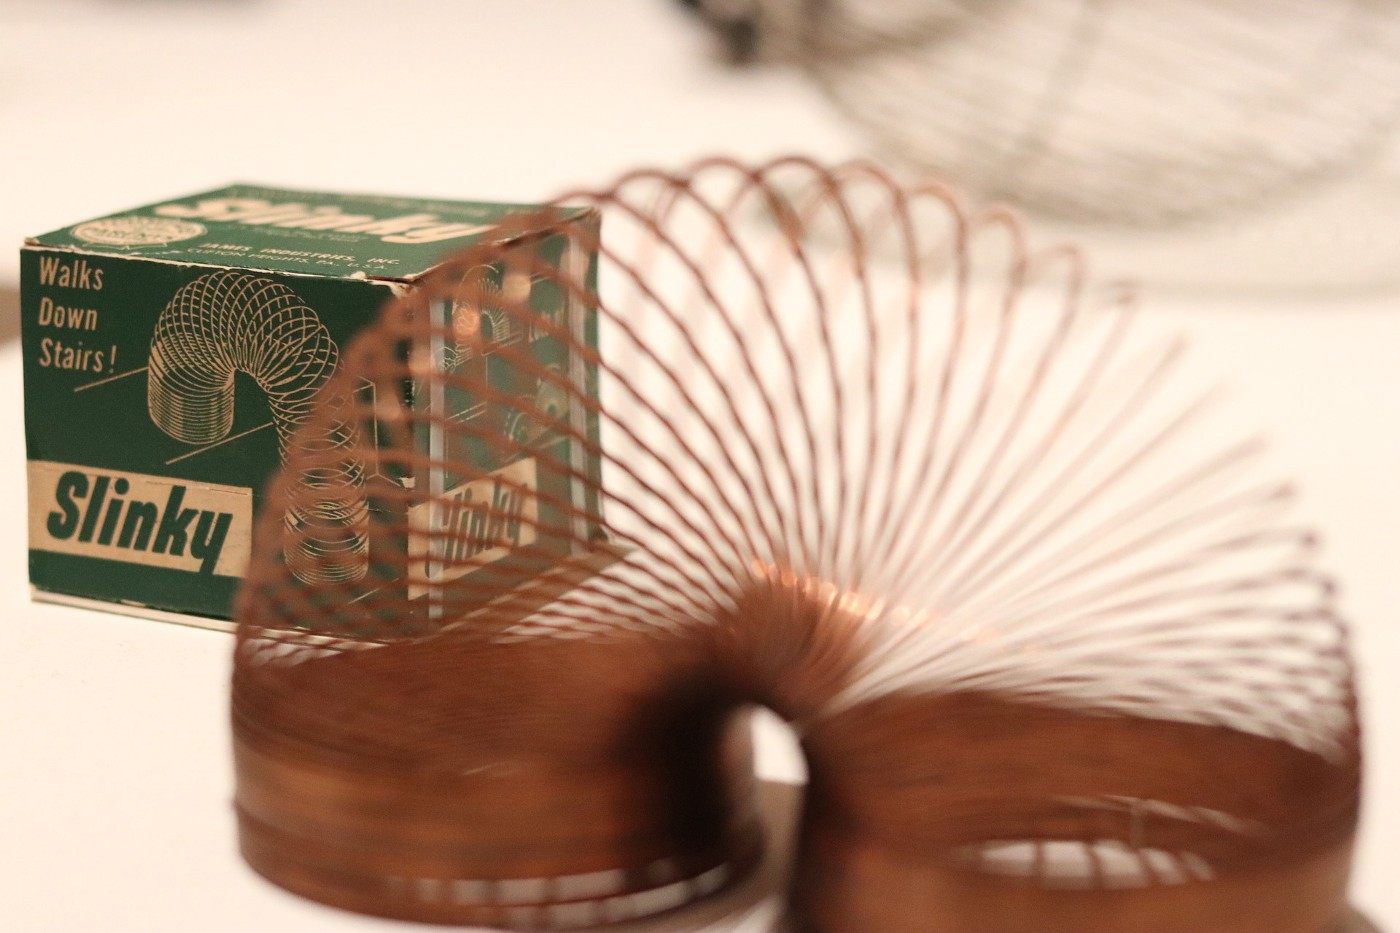 The vintage Slinky box with a partially blurred Slinky fanned out in the foreground.